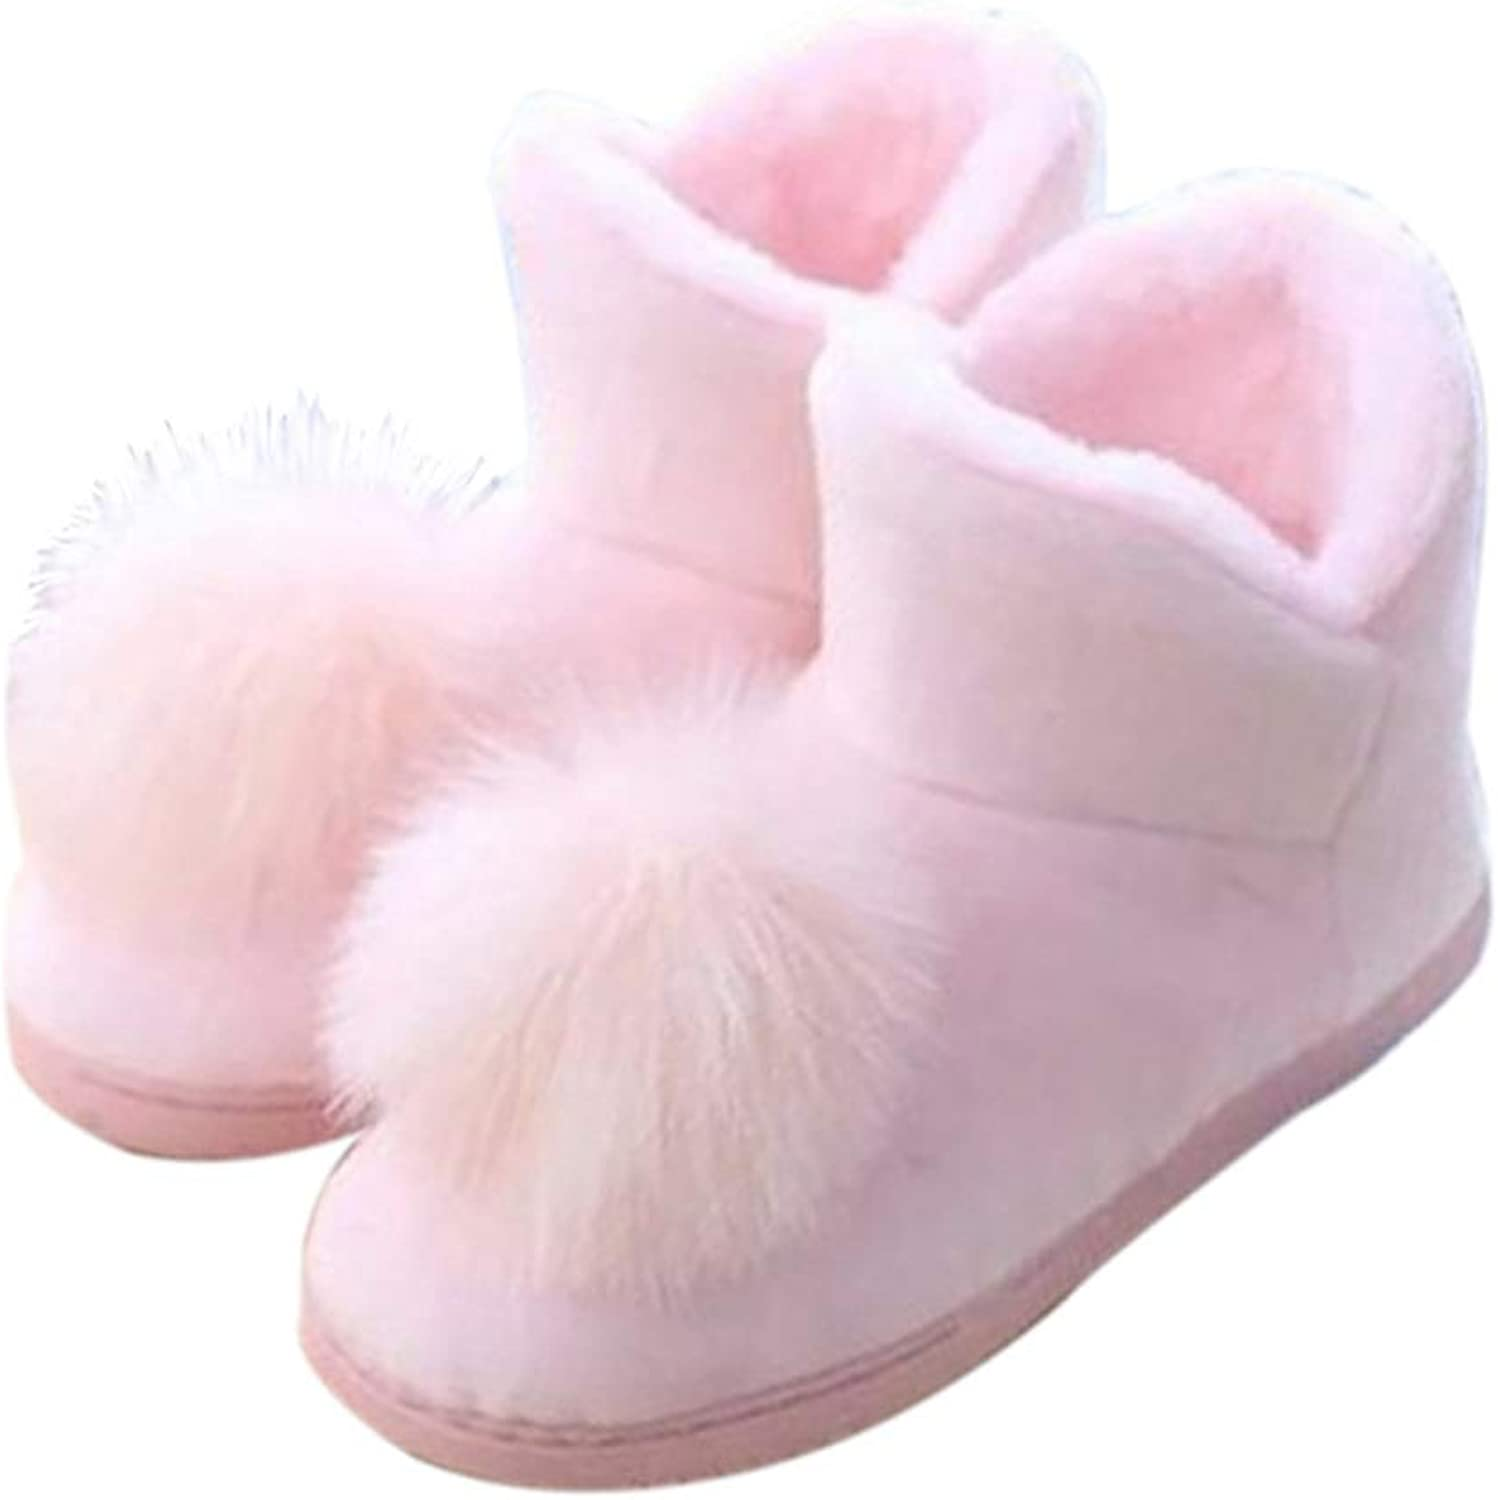 SANOMY Womens Home Slippers Cotton Plush Non-Slip Boots Soft Warm Latex Sew shoes for Indoor and Outdoor